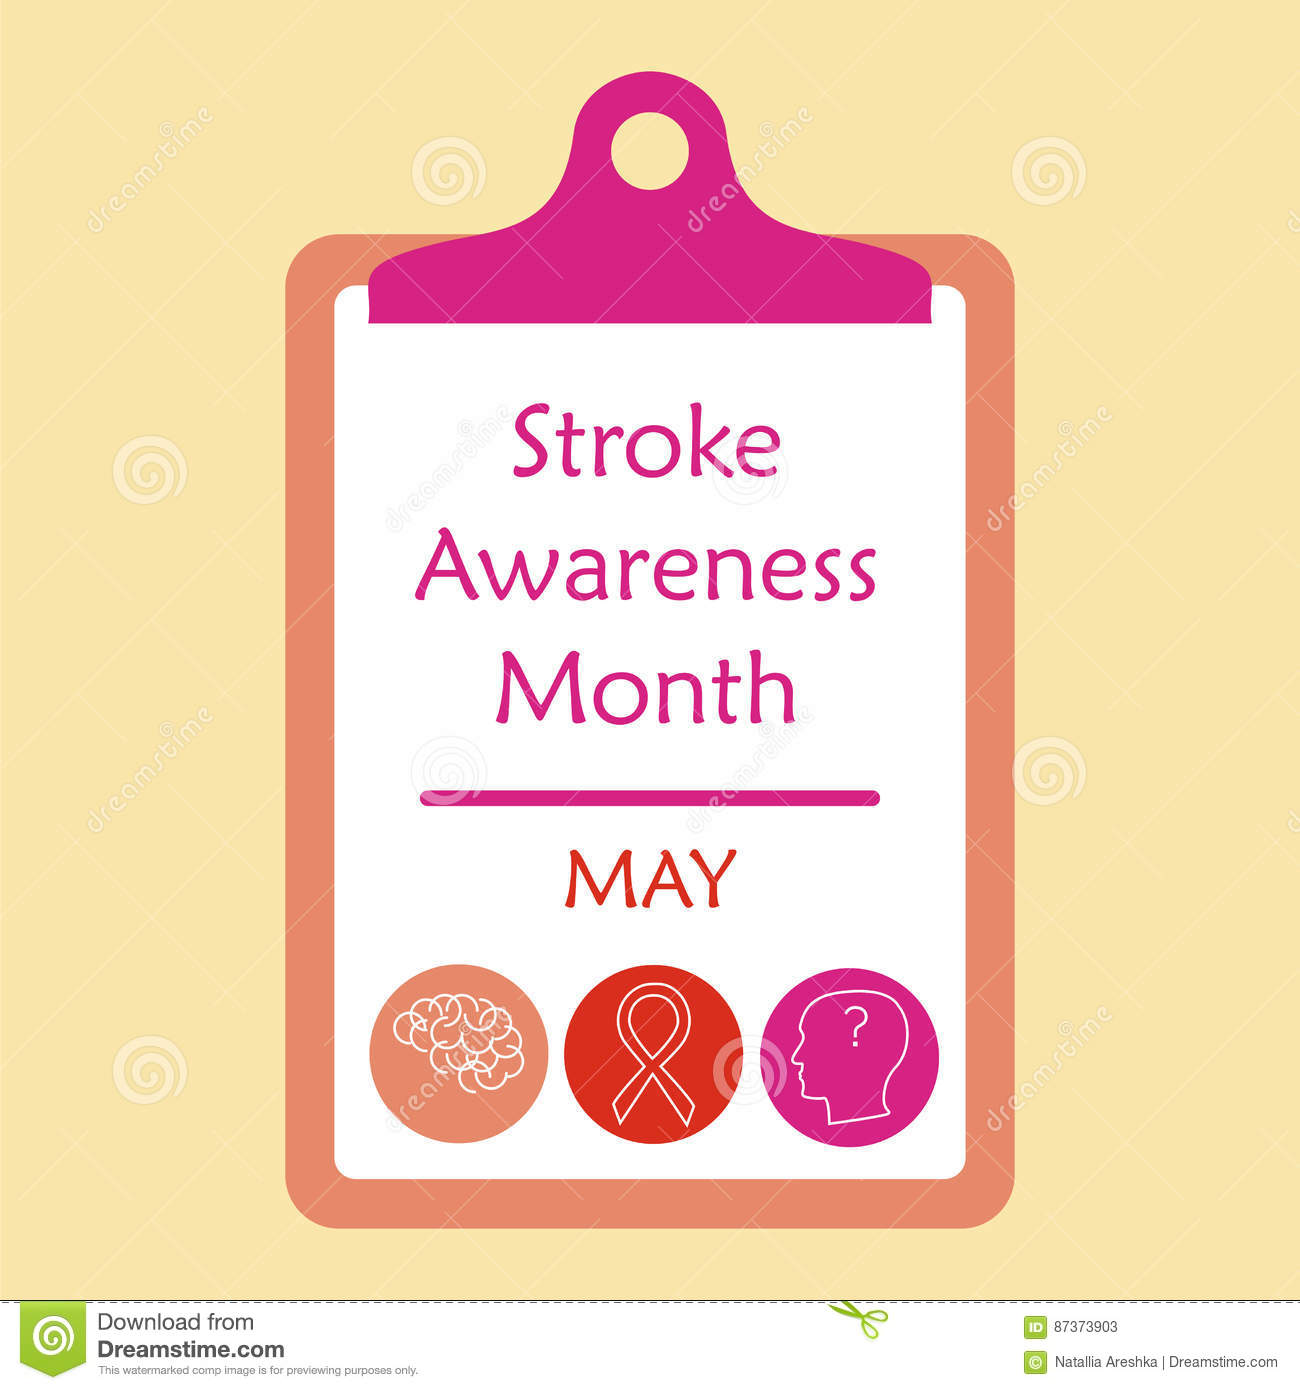 Stroke awareness month stock vector  Illustration of damage